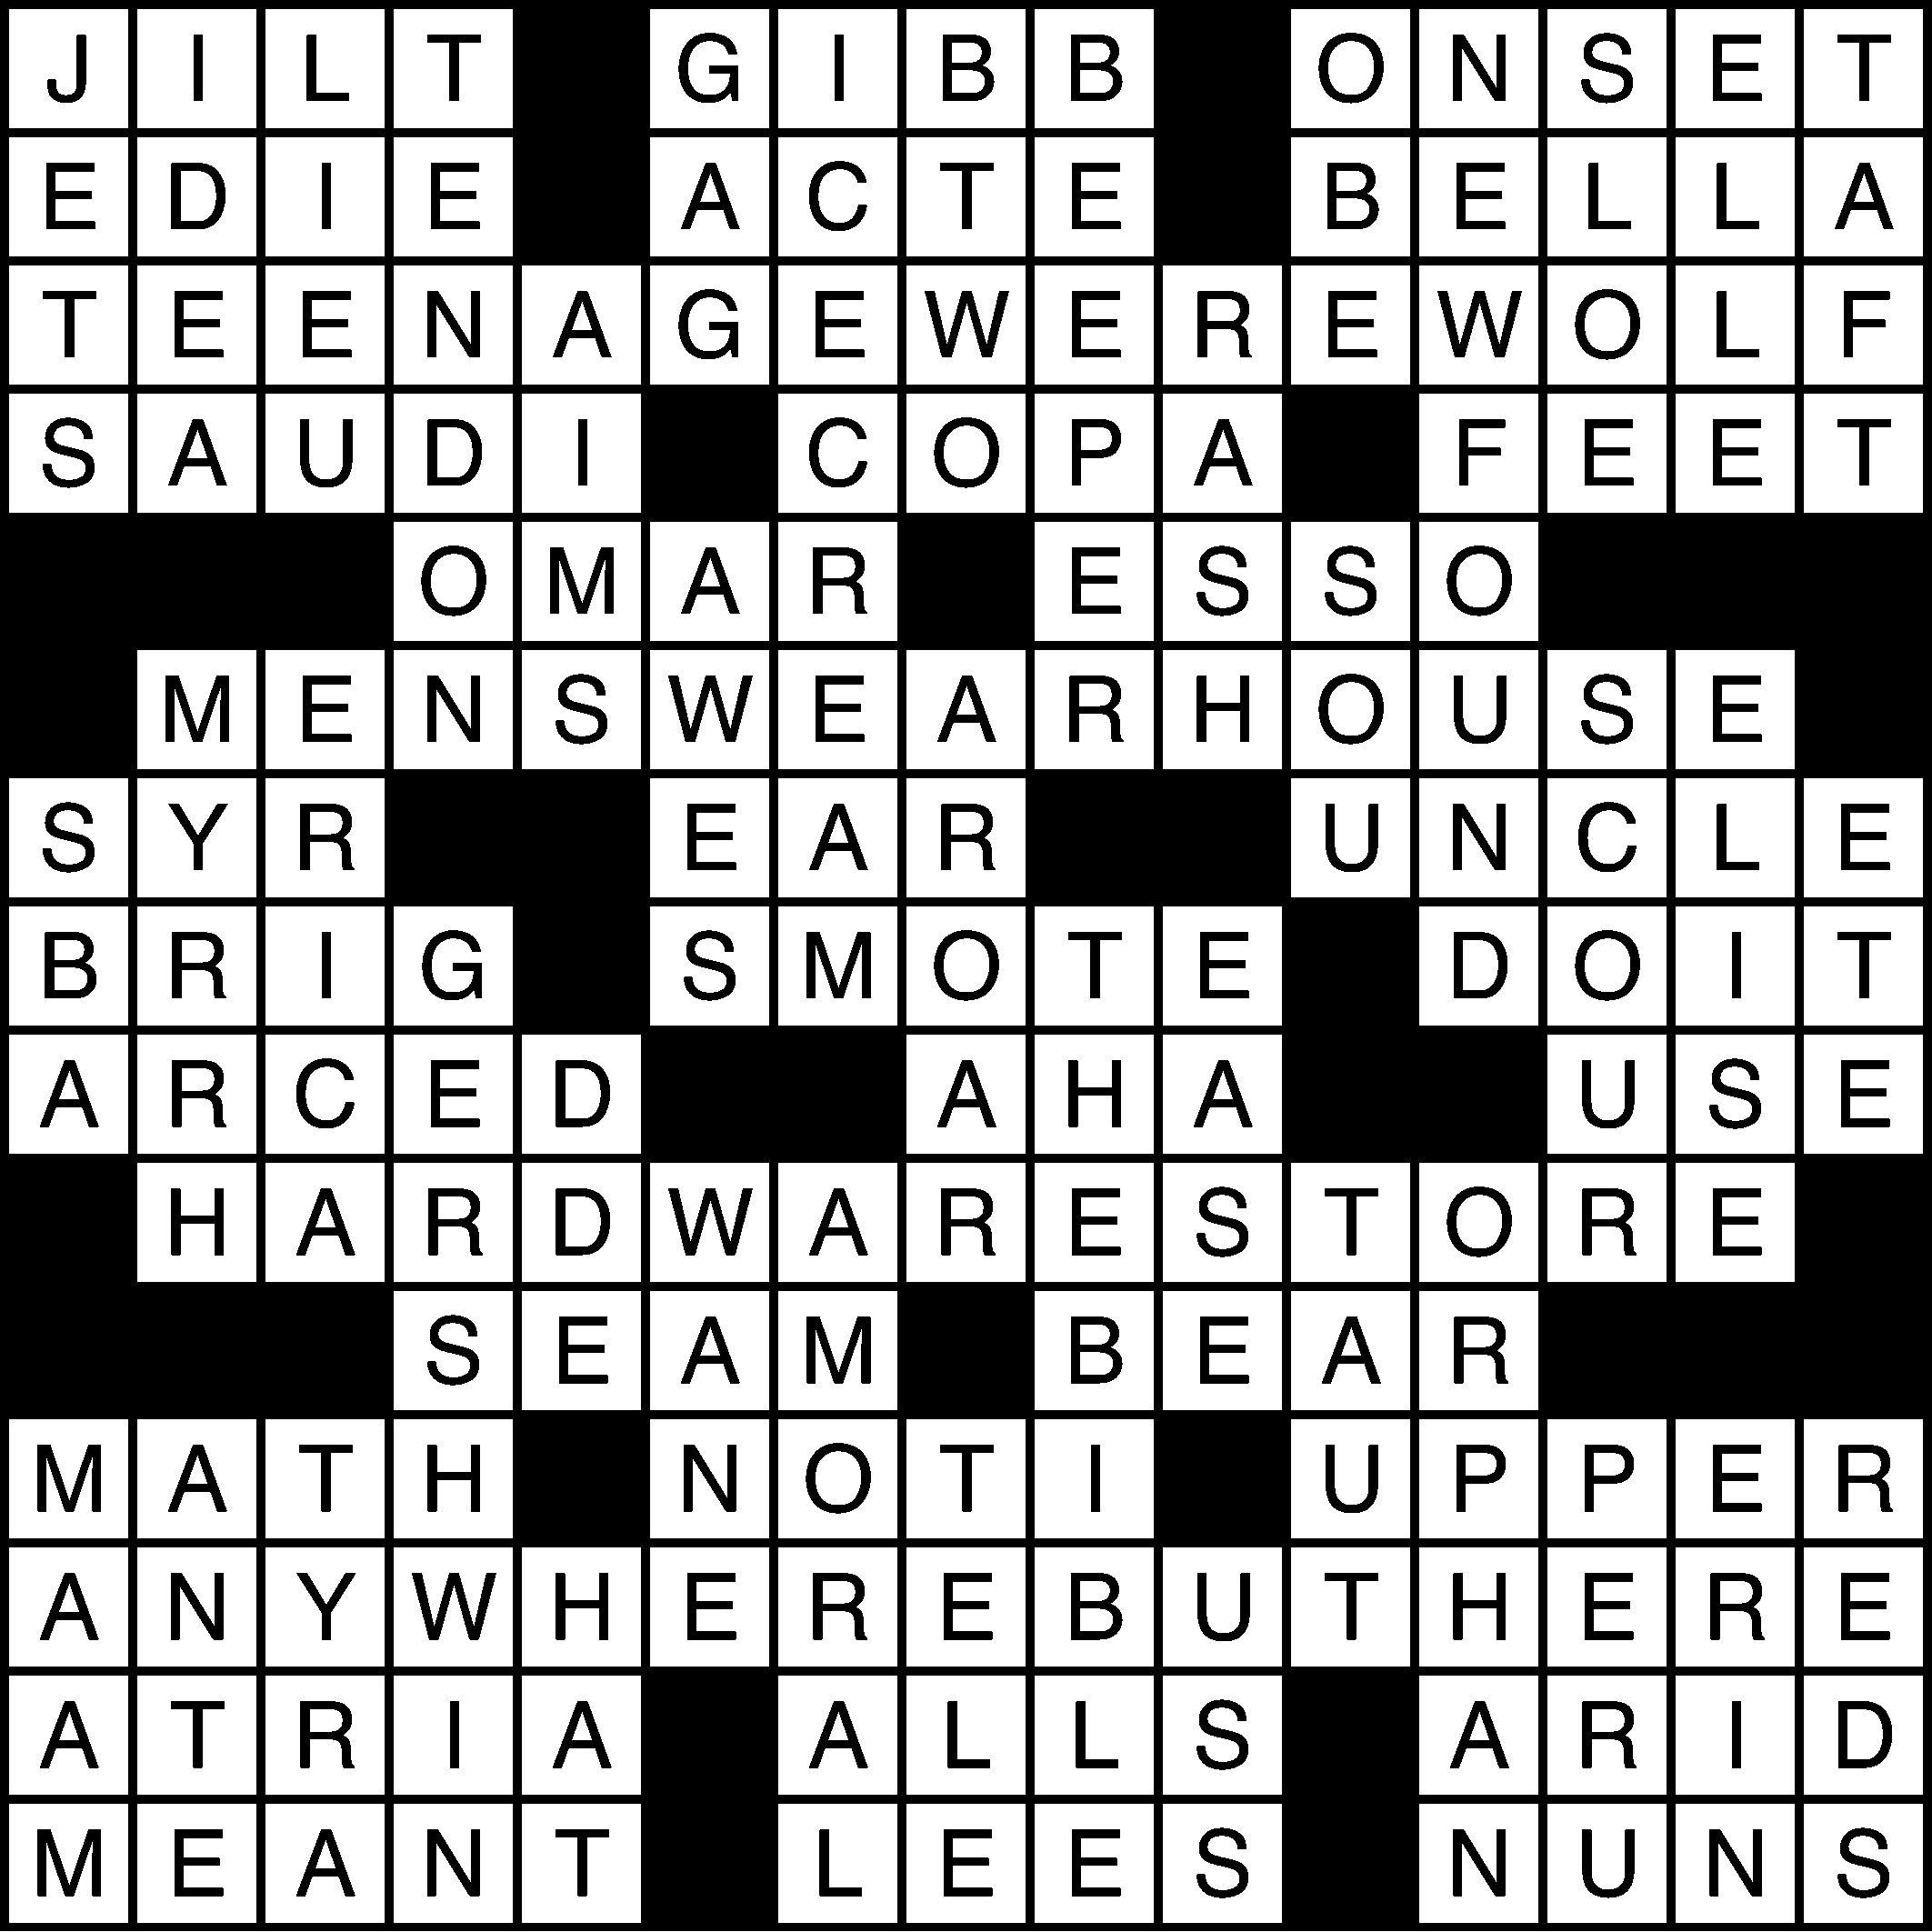 CROSSWORD-0504-ANSWER.png